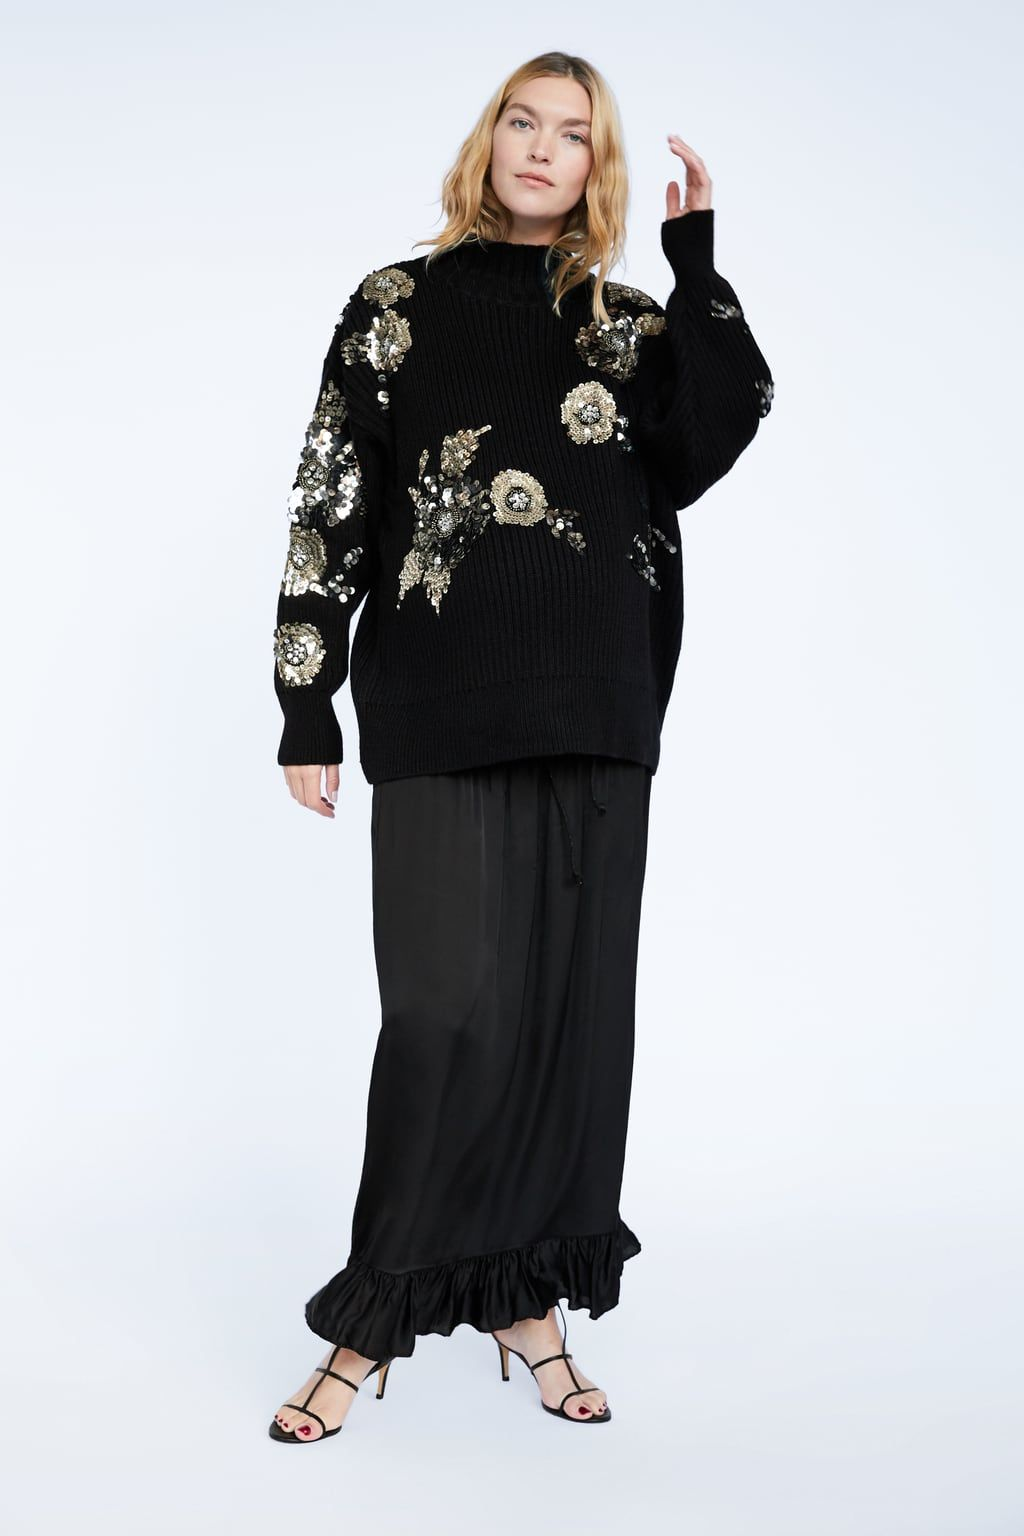 b67cc9609c3 Image 1 of FLORAL SWEATER WITH SEQUINS from Zara